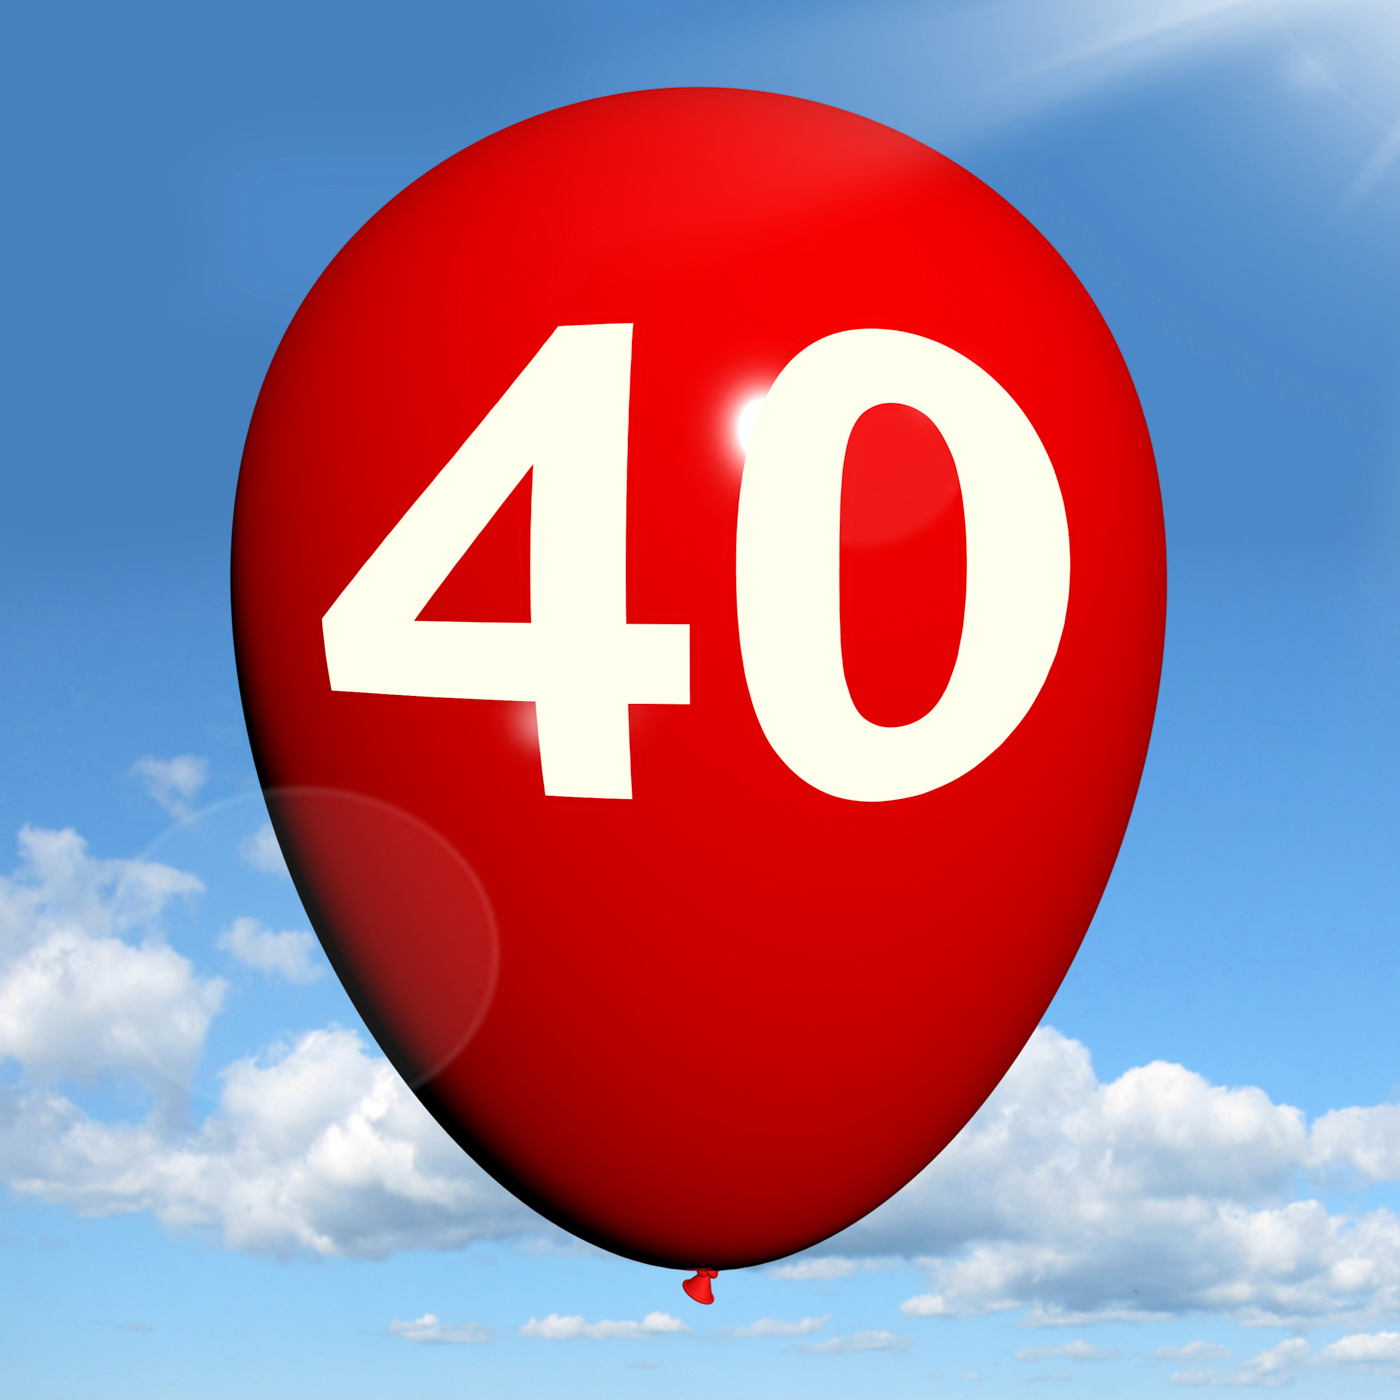 40 Balloon Shows Fortieth Happy Birthday Celebration, 40, 40th, Adult, Adulthood, HQ Photo